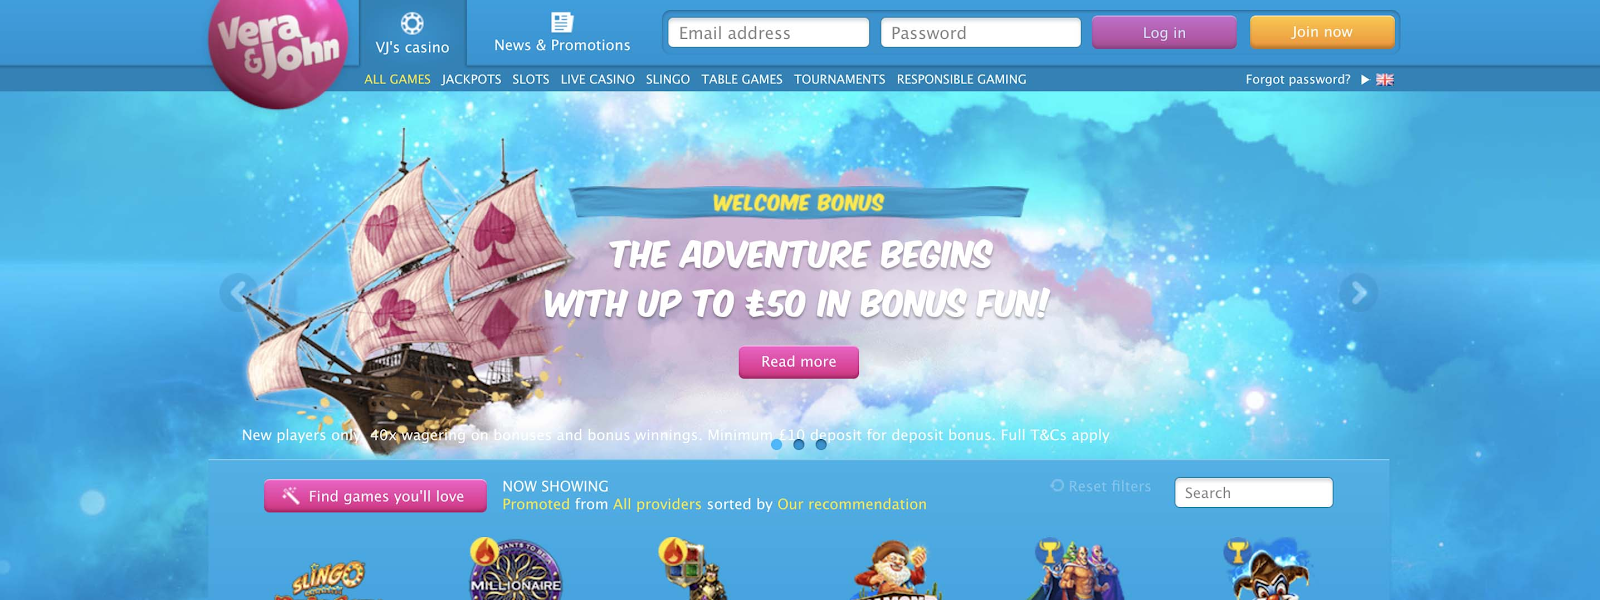 Top casino games online uk